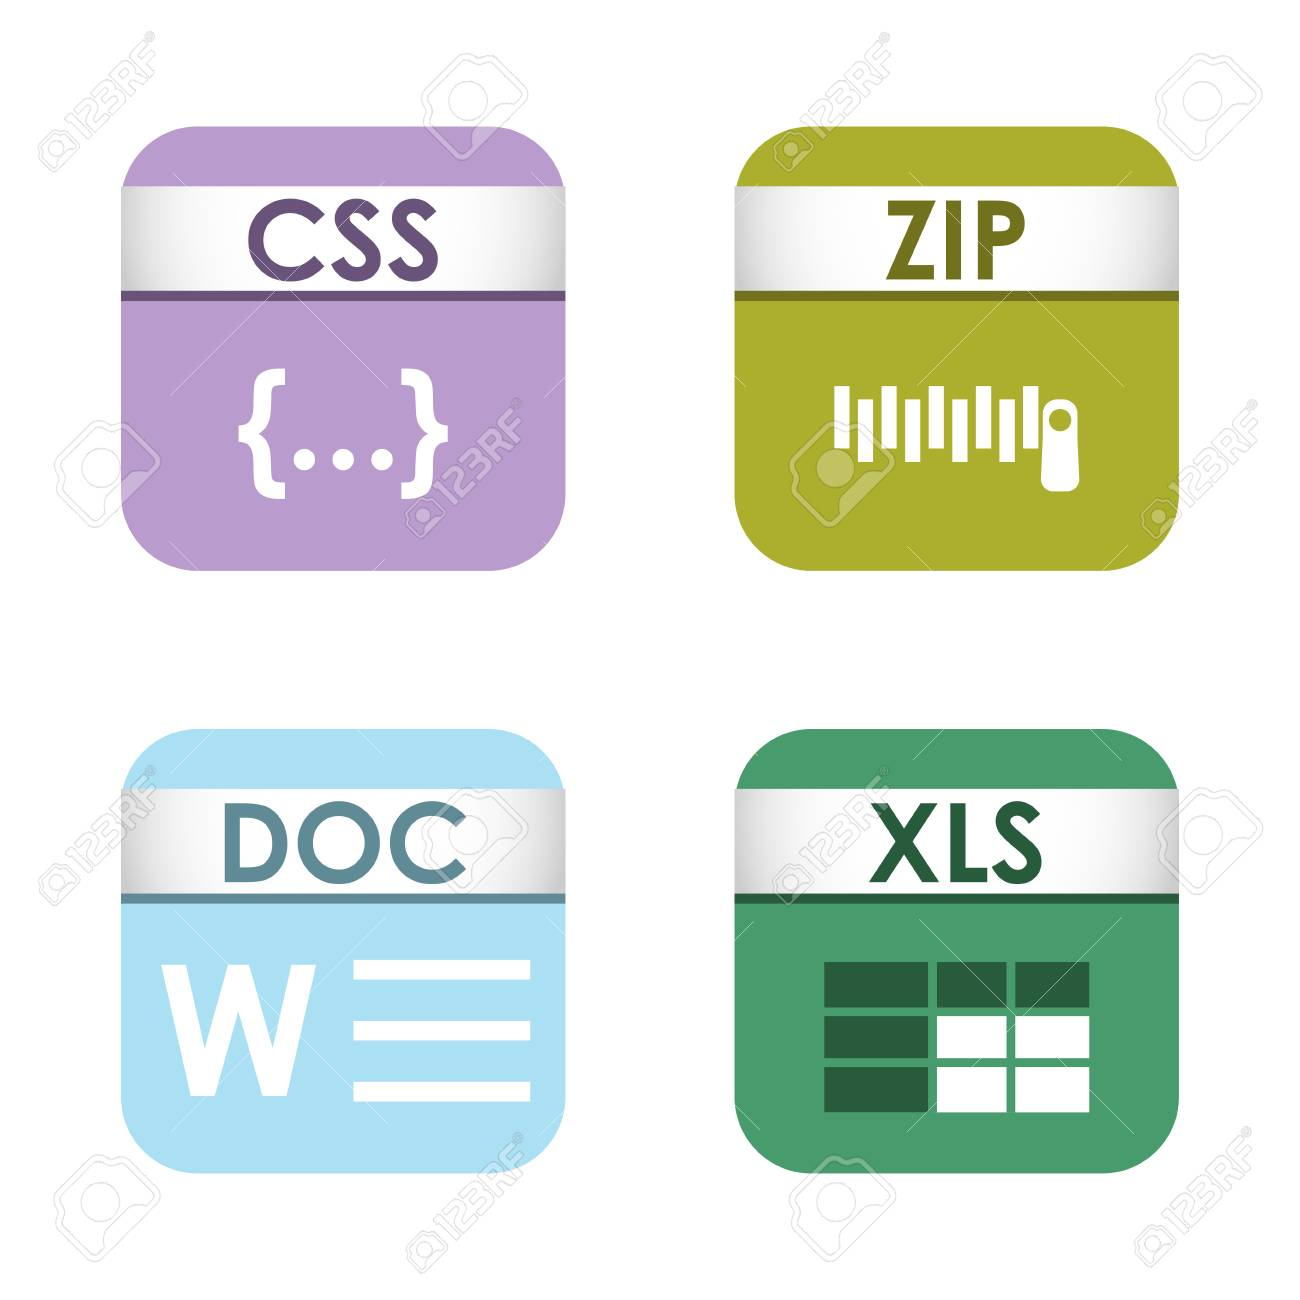 simple square file types formats labels icon set presentation